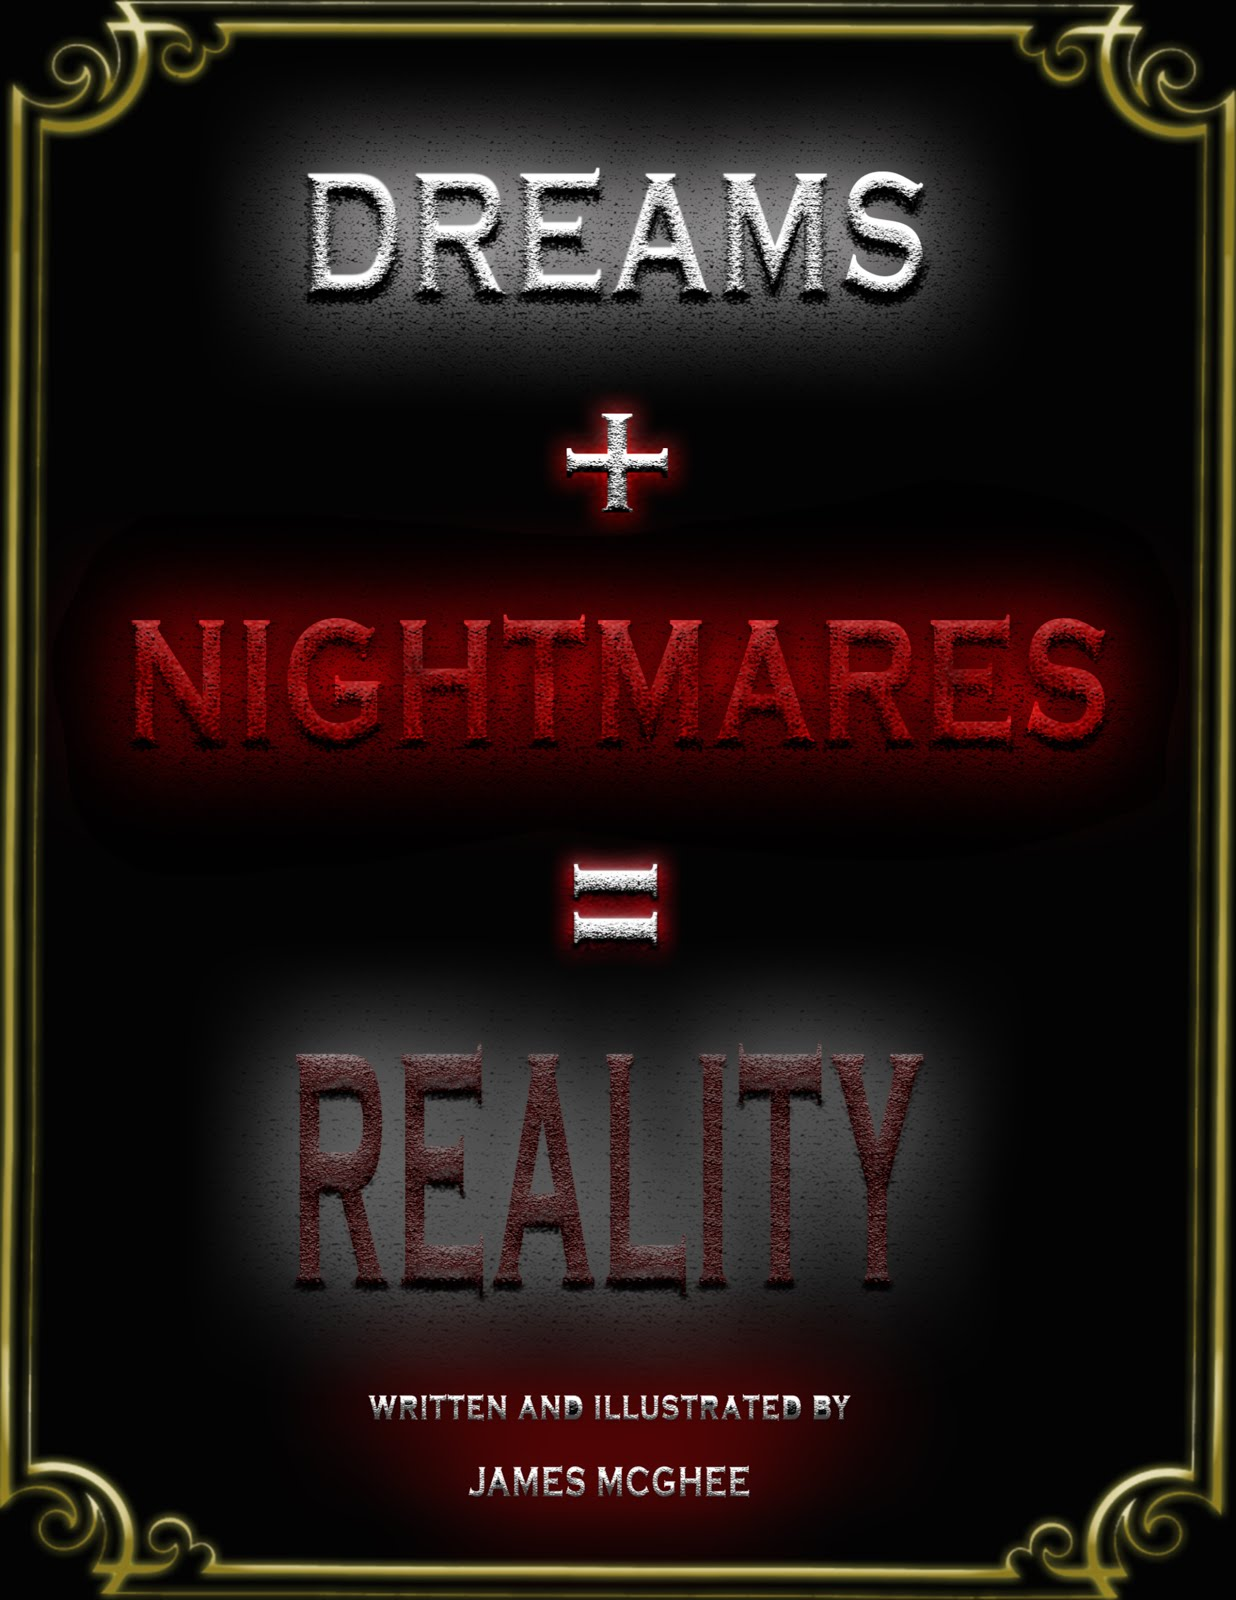 Dreams + Nightmares = Reality